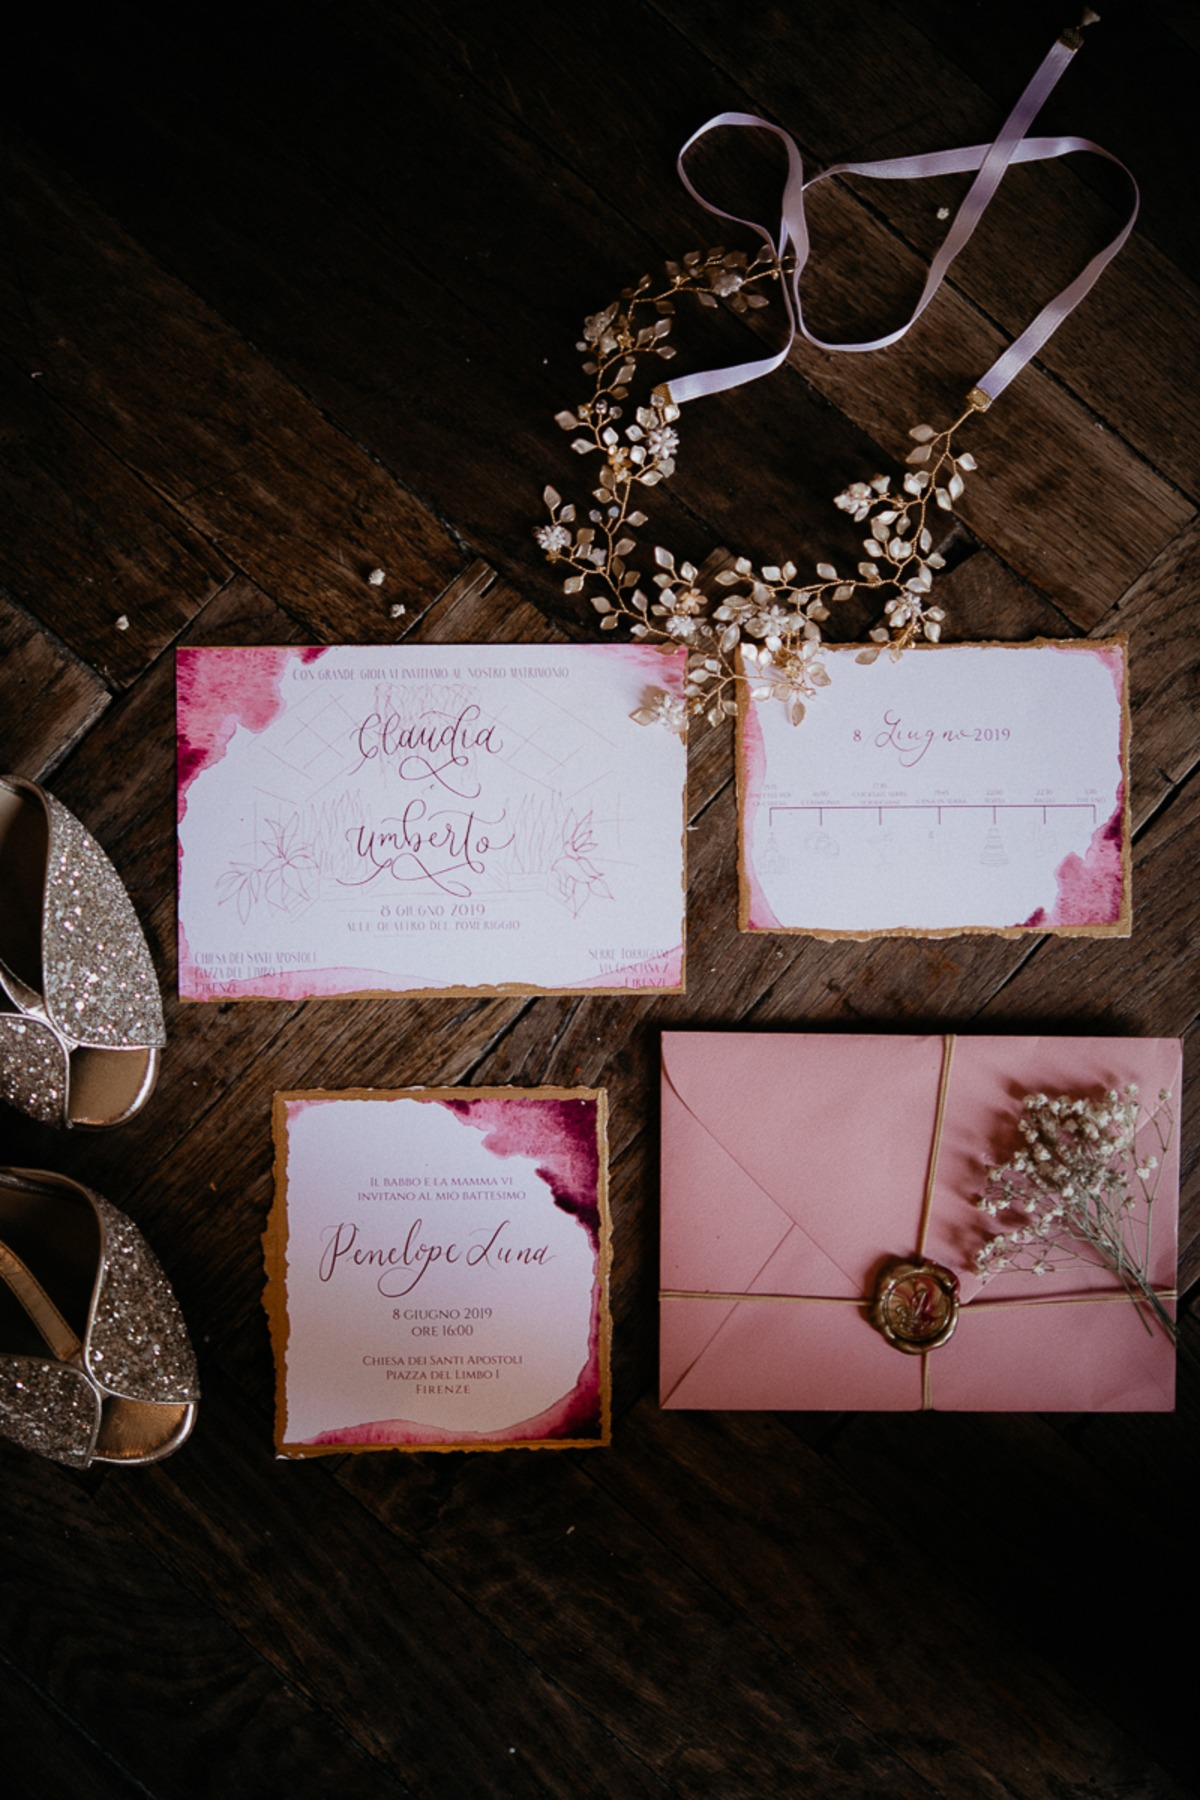 Tips & Tricks for your Wedding Photos with an Eye on Details